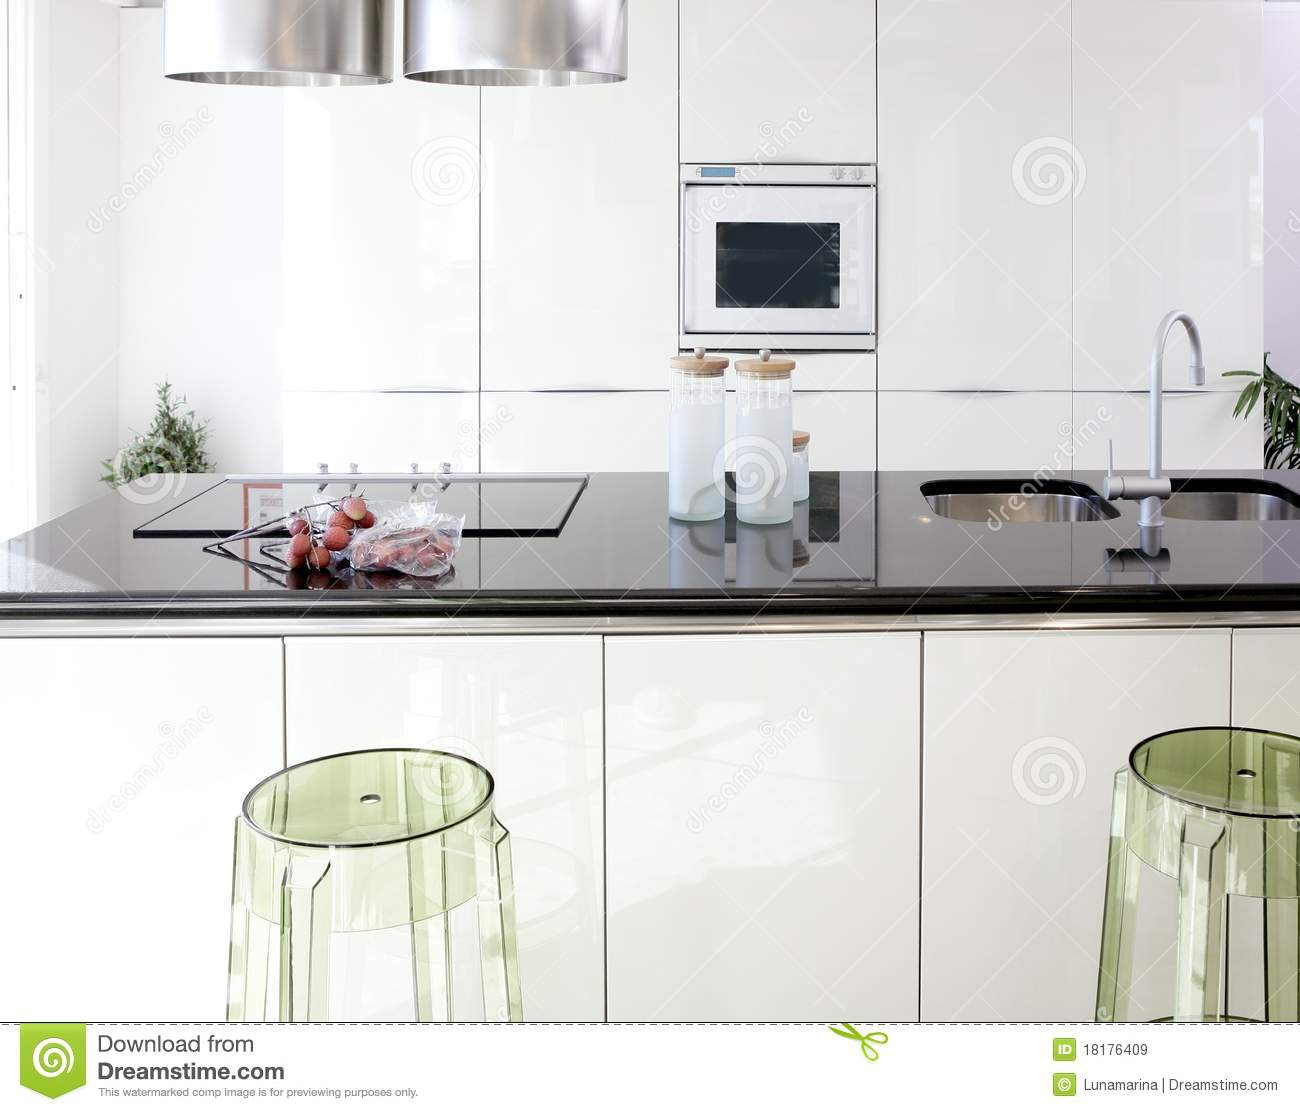 Kitchen Design Images Free: Modern White Kitchen Clean Interior Design Stock Image